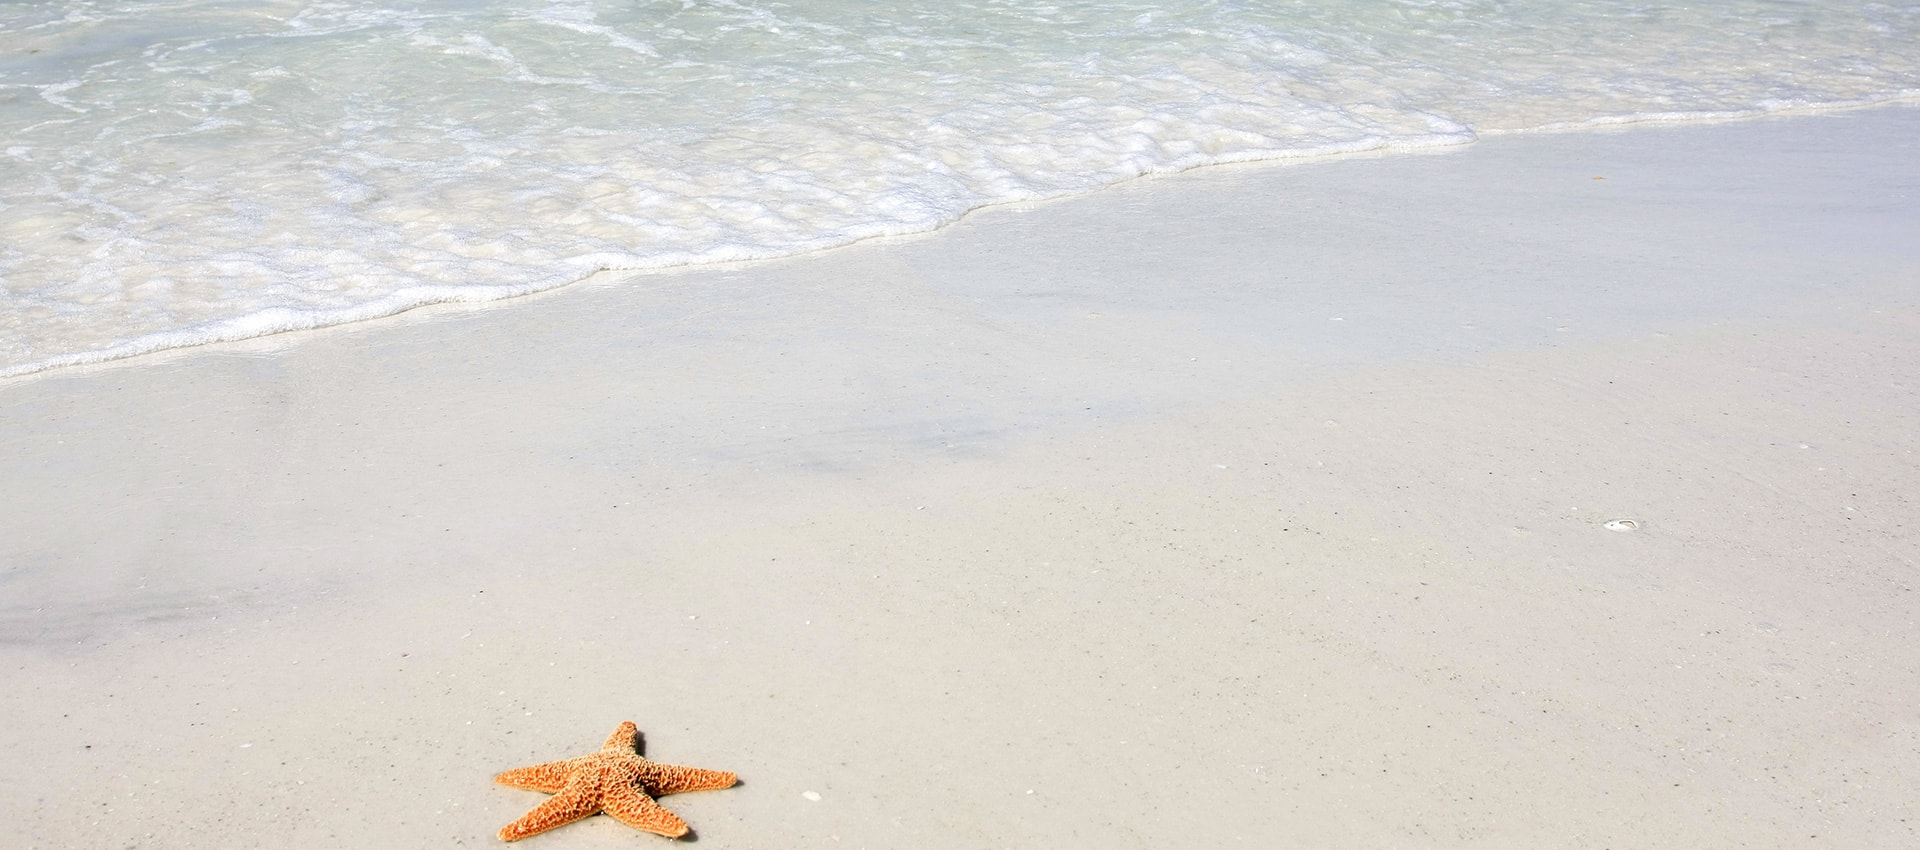 Picture of the beach and a starfish